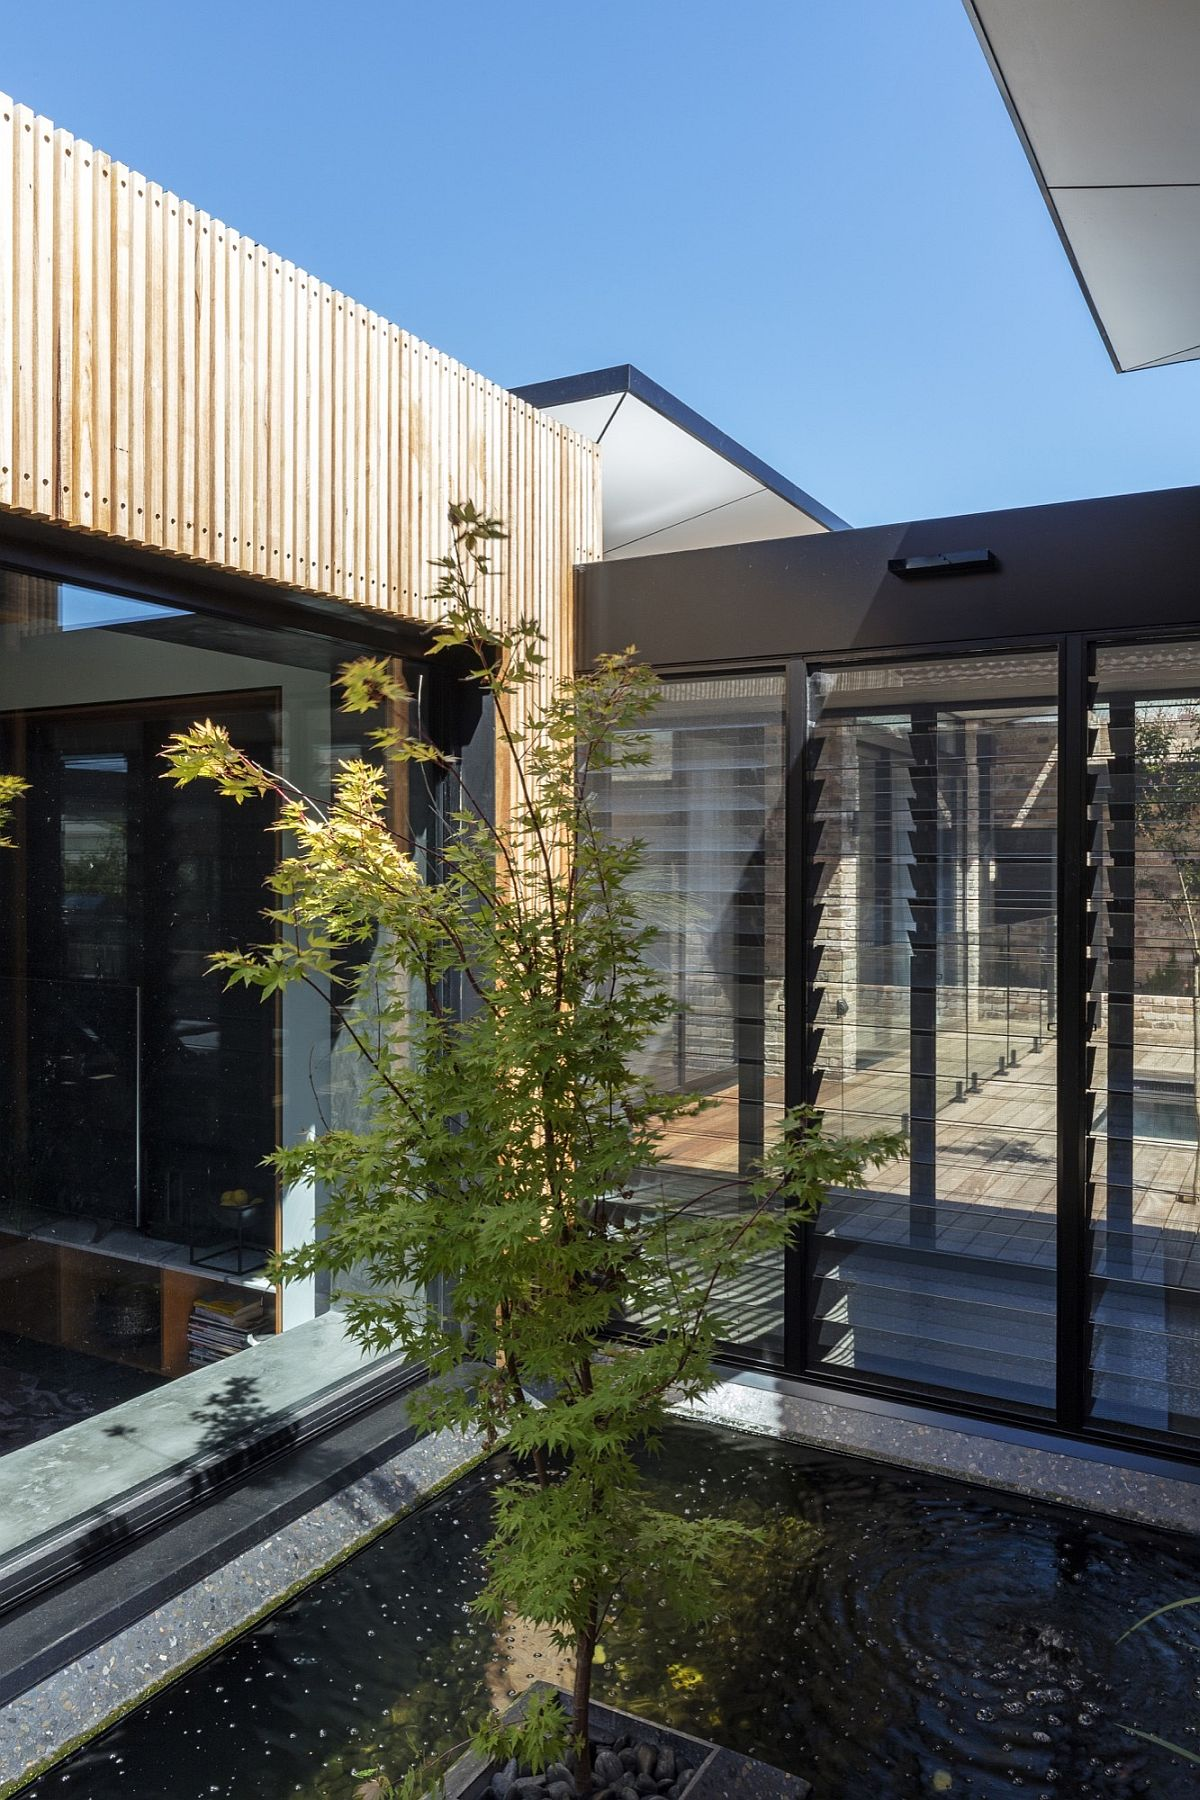 Central courtyard and water feature at the Aussie home